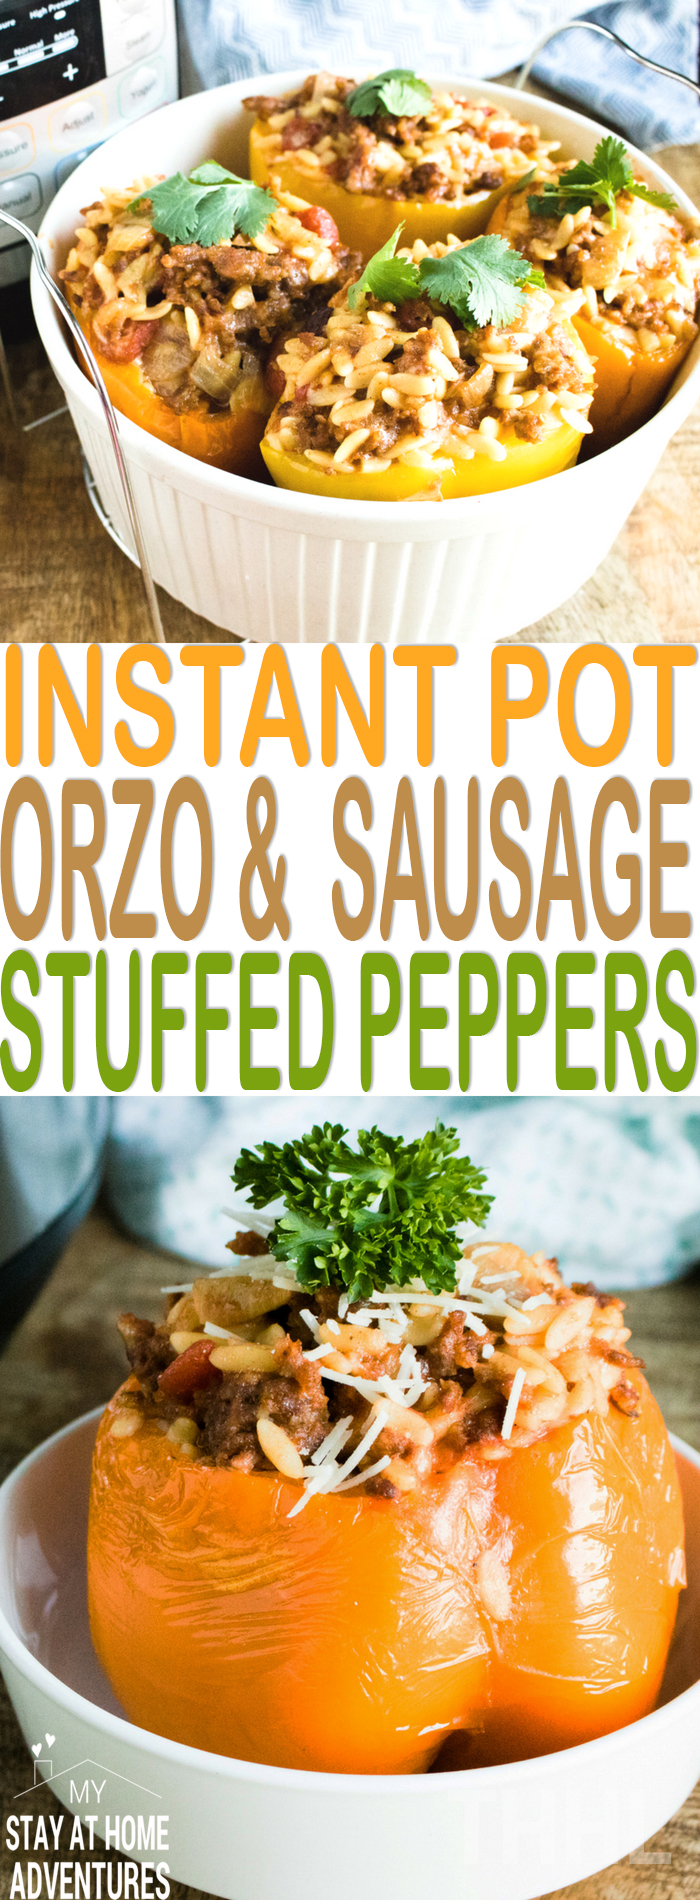 Learn how to make Instant Pot Orzo & Italian Sausage Stuffed Peppers that is so easy and delicious you and your family are going to love! #Instantpot #Recipes #Yummy